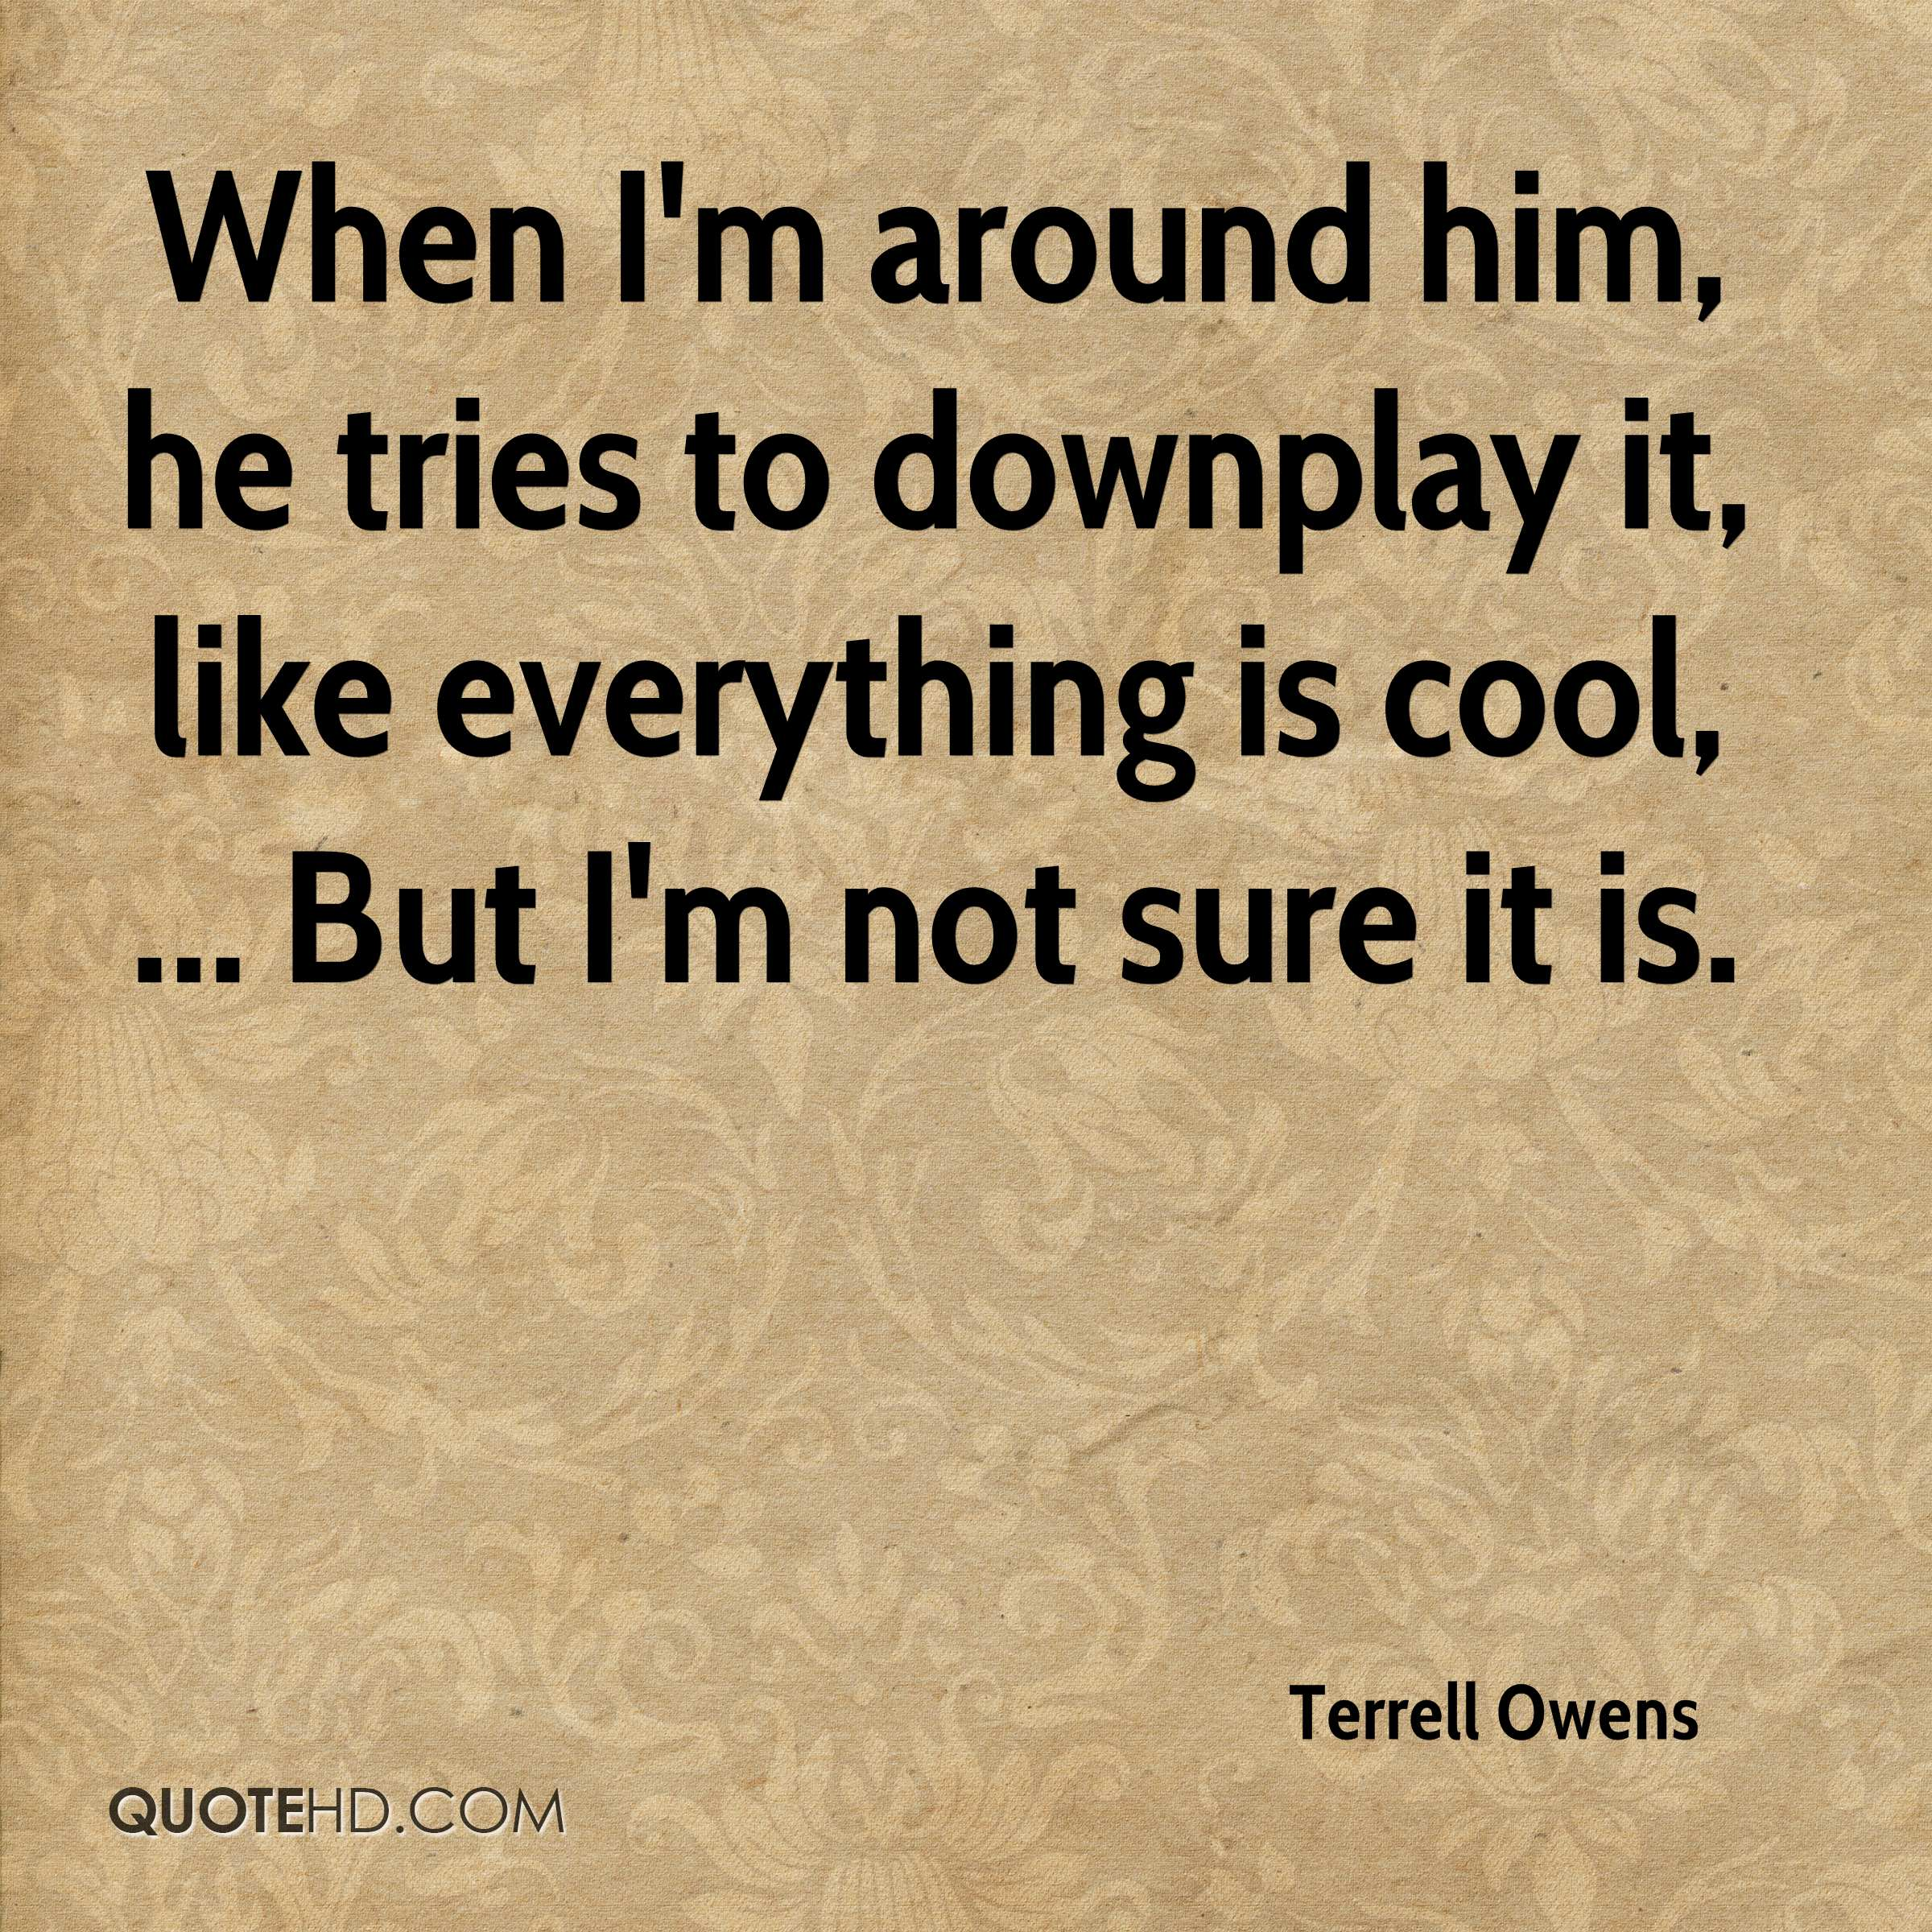 When I'm around him, he tries to downplay it, like everything is cool, ... But I'm not sure it is.